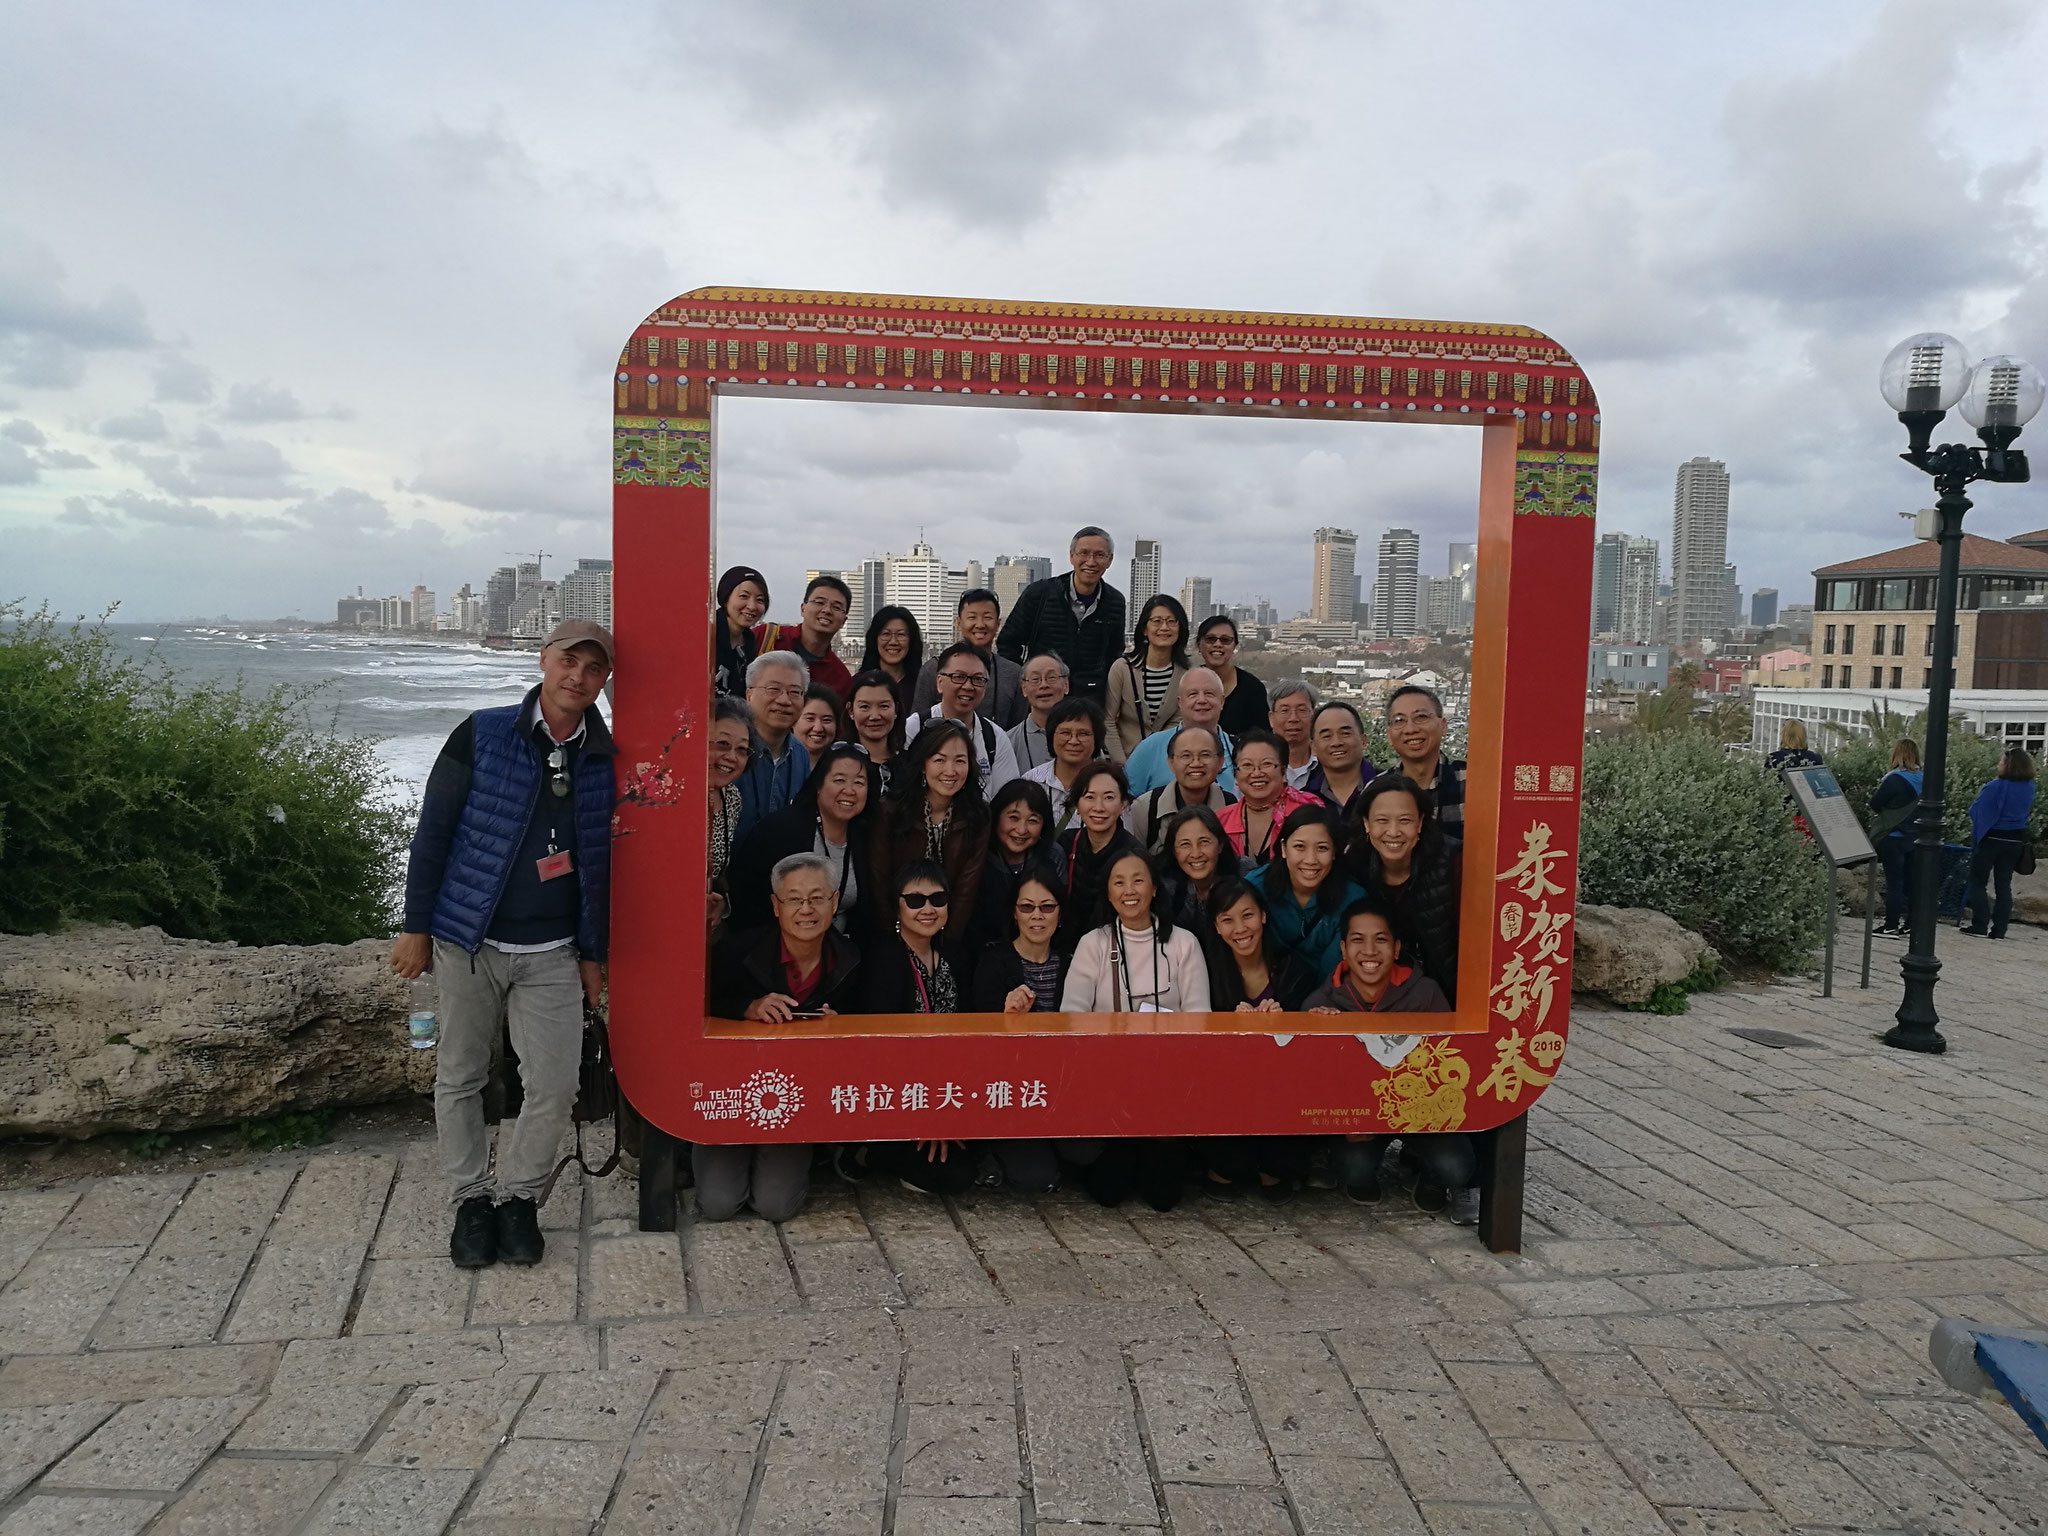 American Chinese Evangelical group in Jaffa